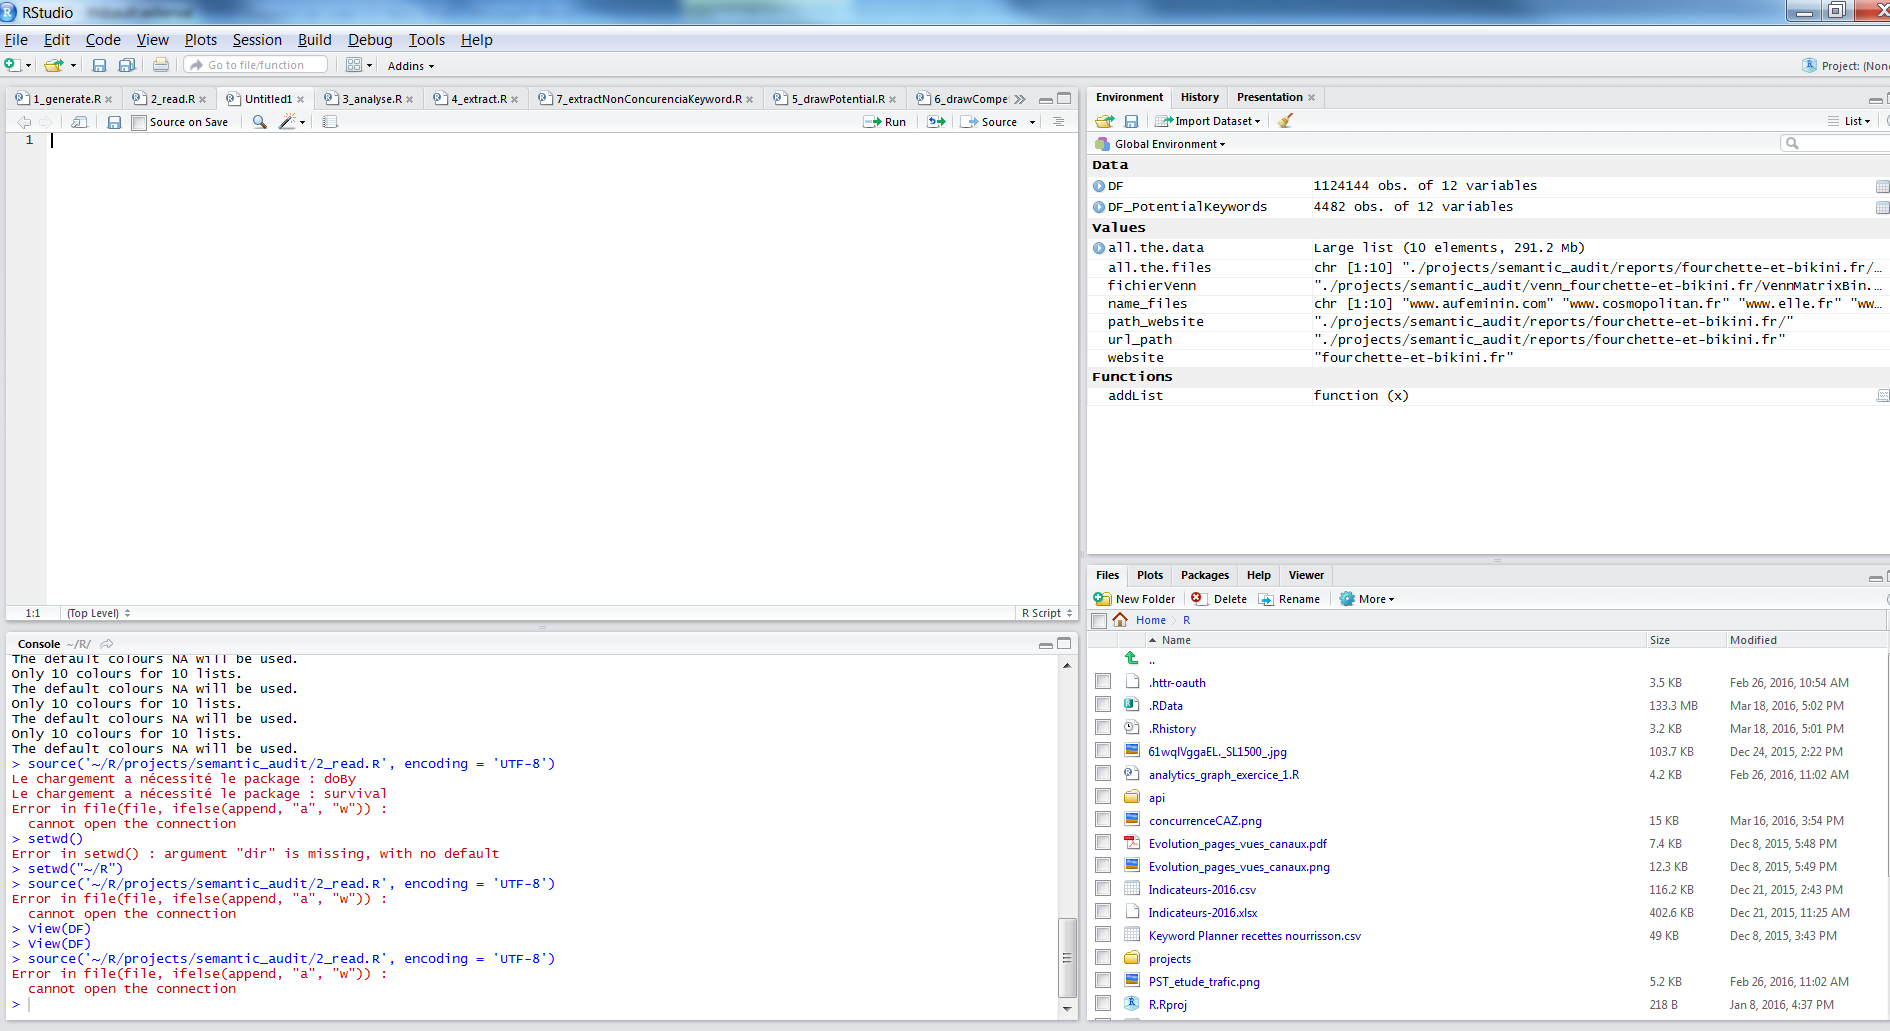 Installer RStudio pour le reporting